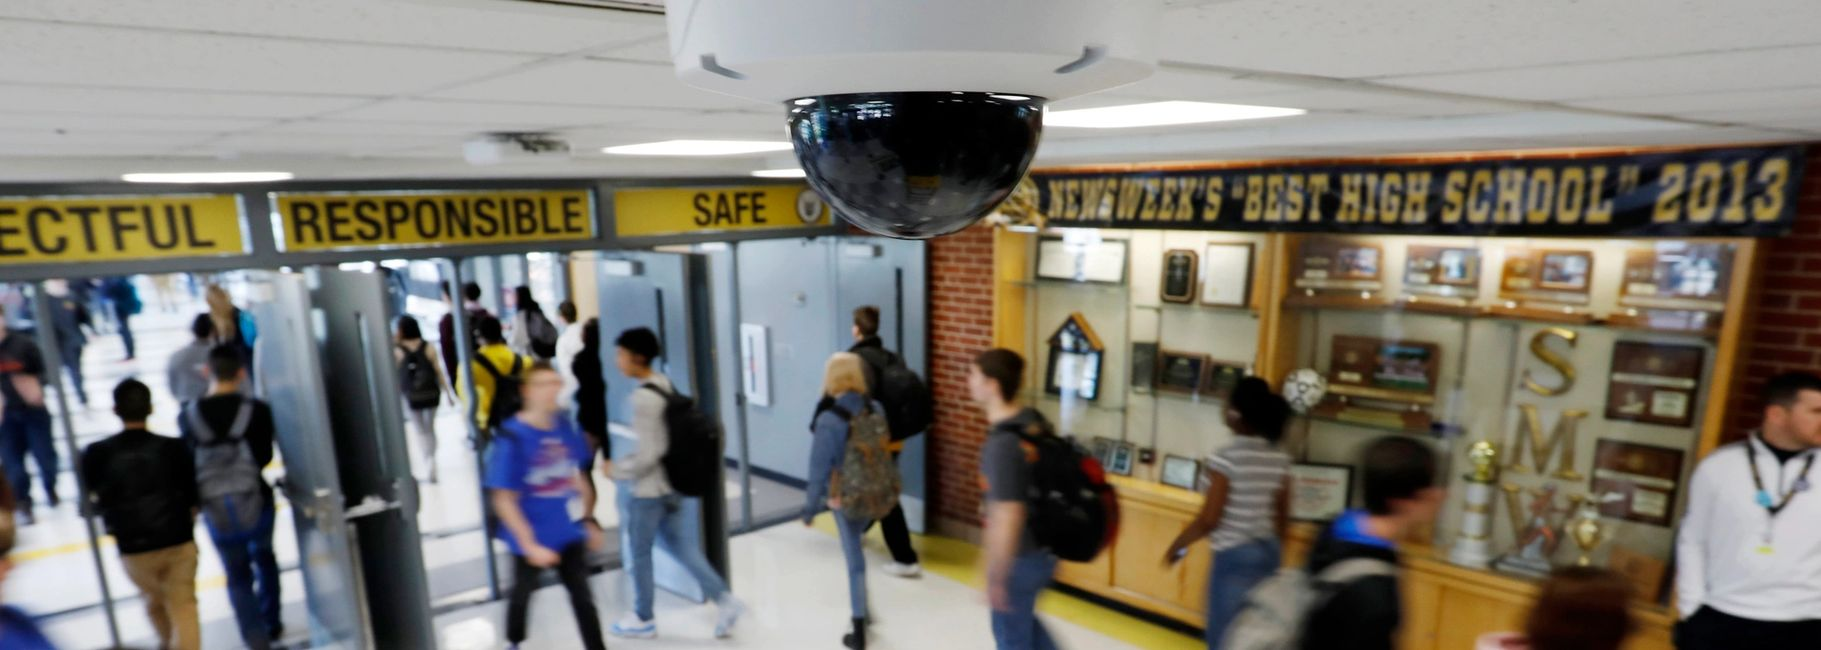 School Security Solutions for Boca Raton and Florida